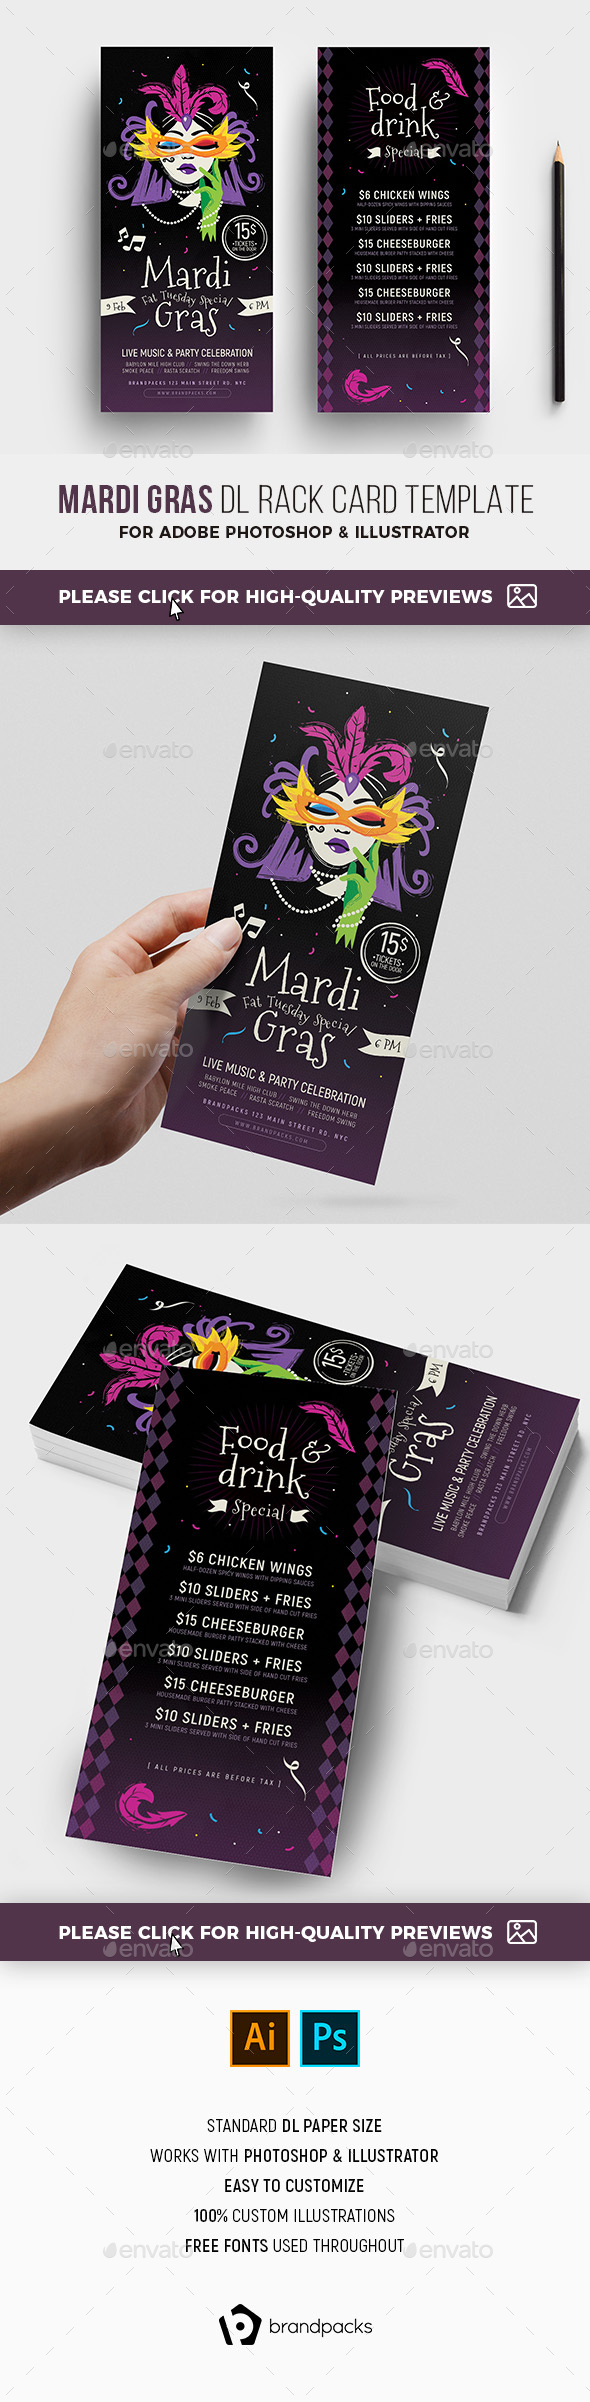 Flyers PSD – Outdated Mardi Gras DL Rack Card – Download